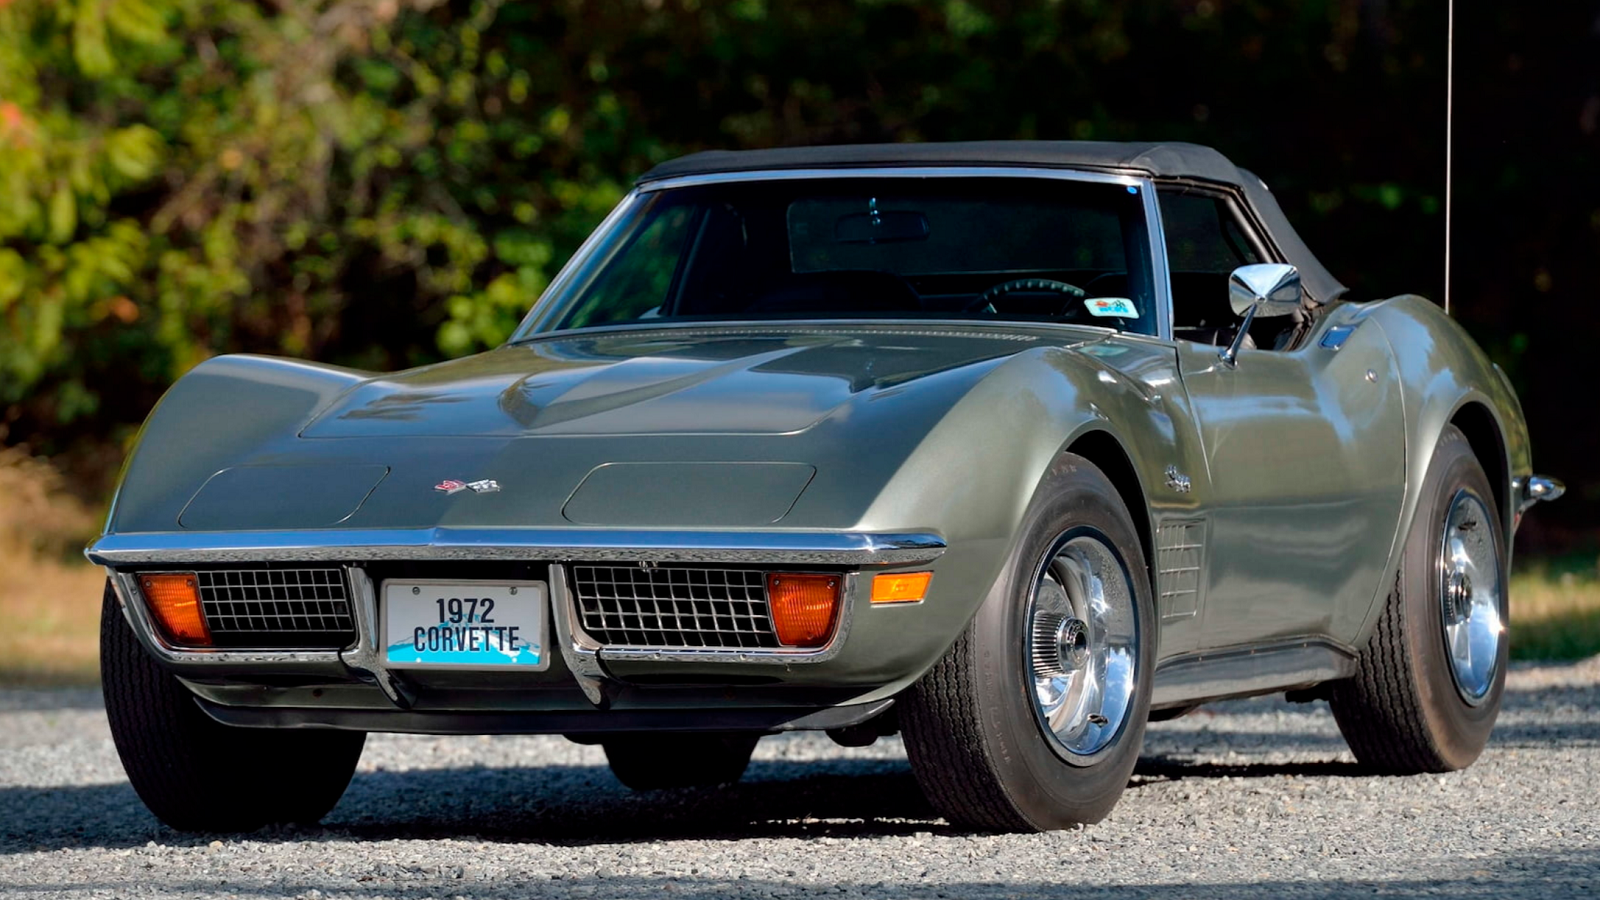 1972 Corvette with 3K Miles Survives the Ills of Time